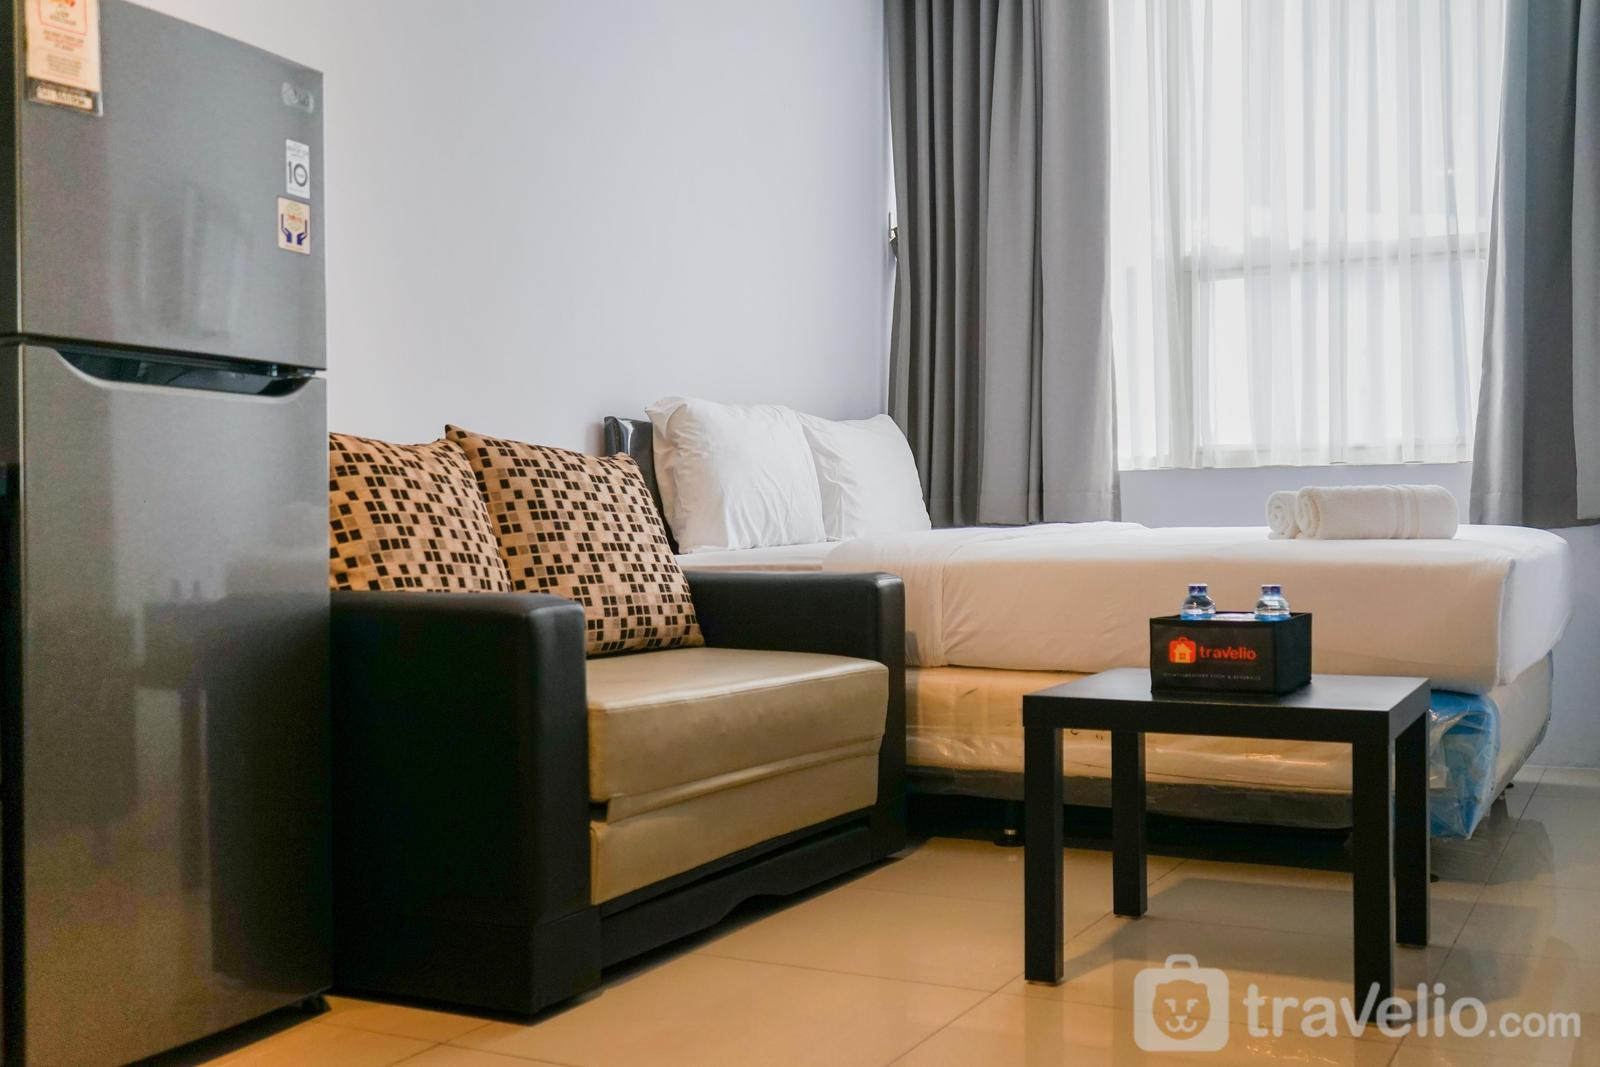 Pasar Baru Mansion  - Spacious Studio Apartment at Pasar Baru Mansion By Travelio